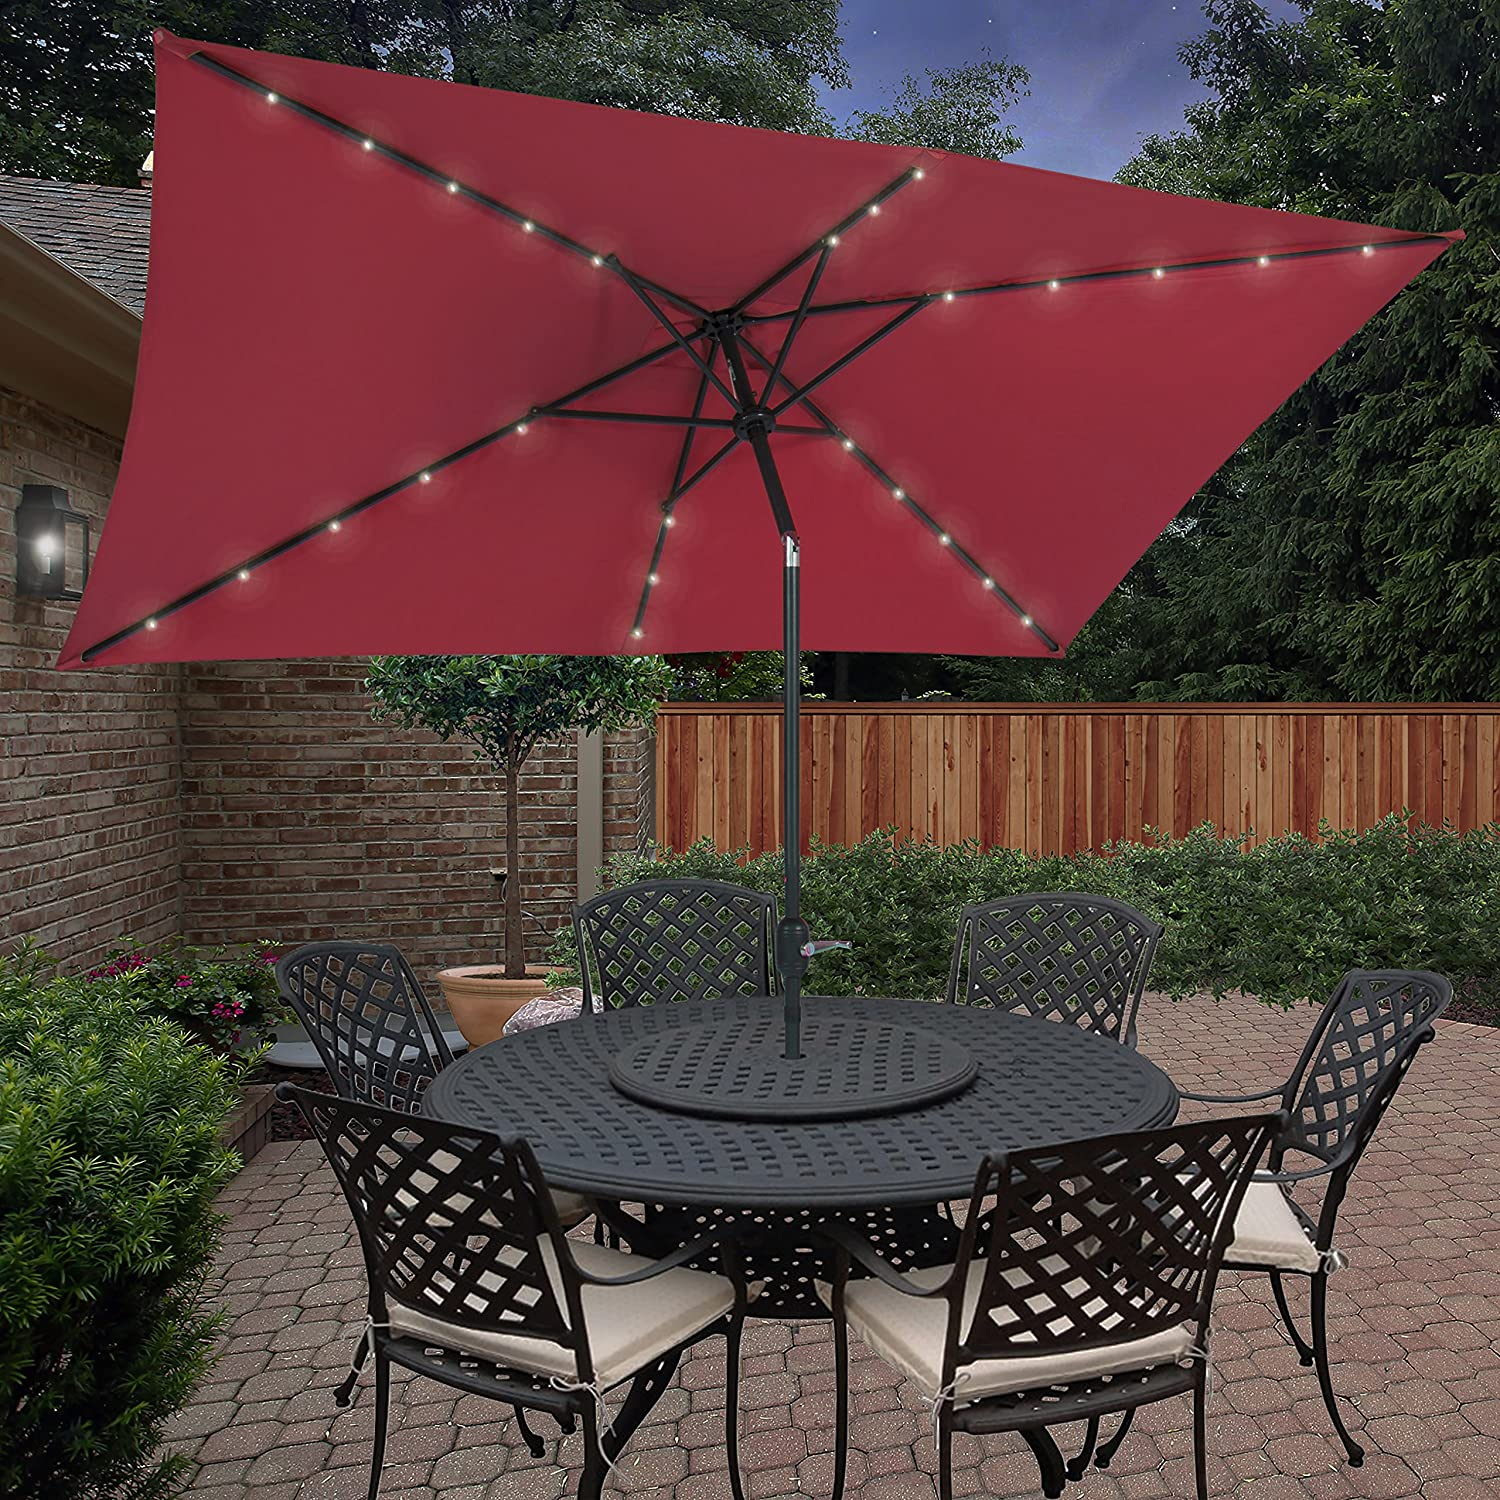 BCP 10u0027x6.2u0027 Deluxe Solar LED Lighted Rectangle Patio Umbrella W Tilt